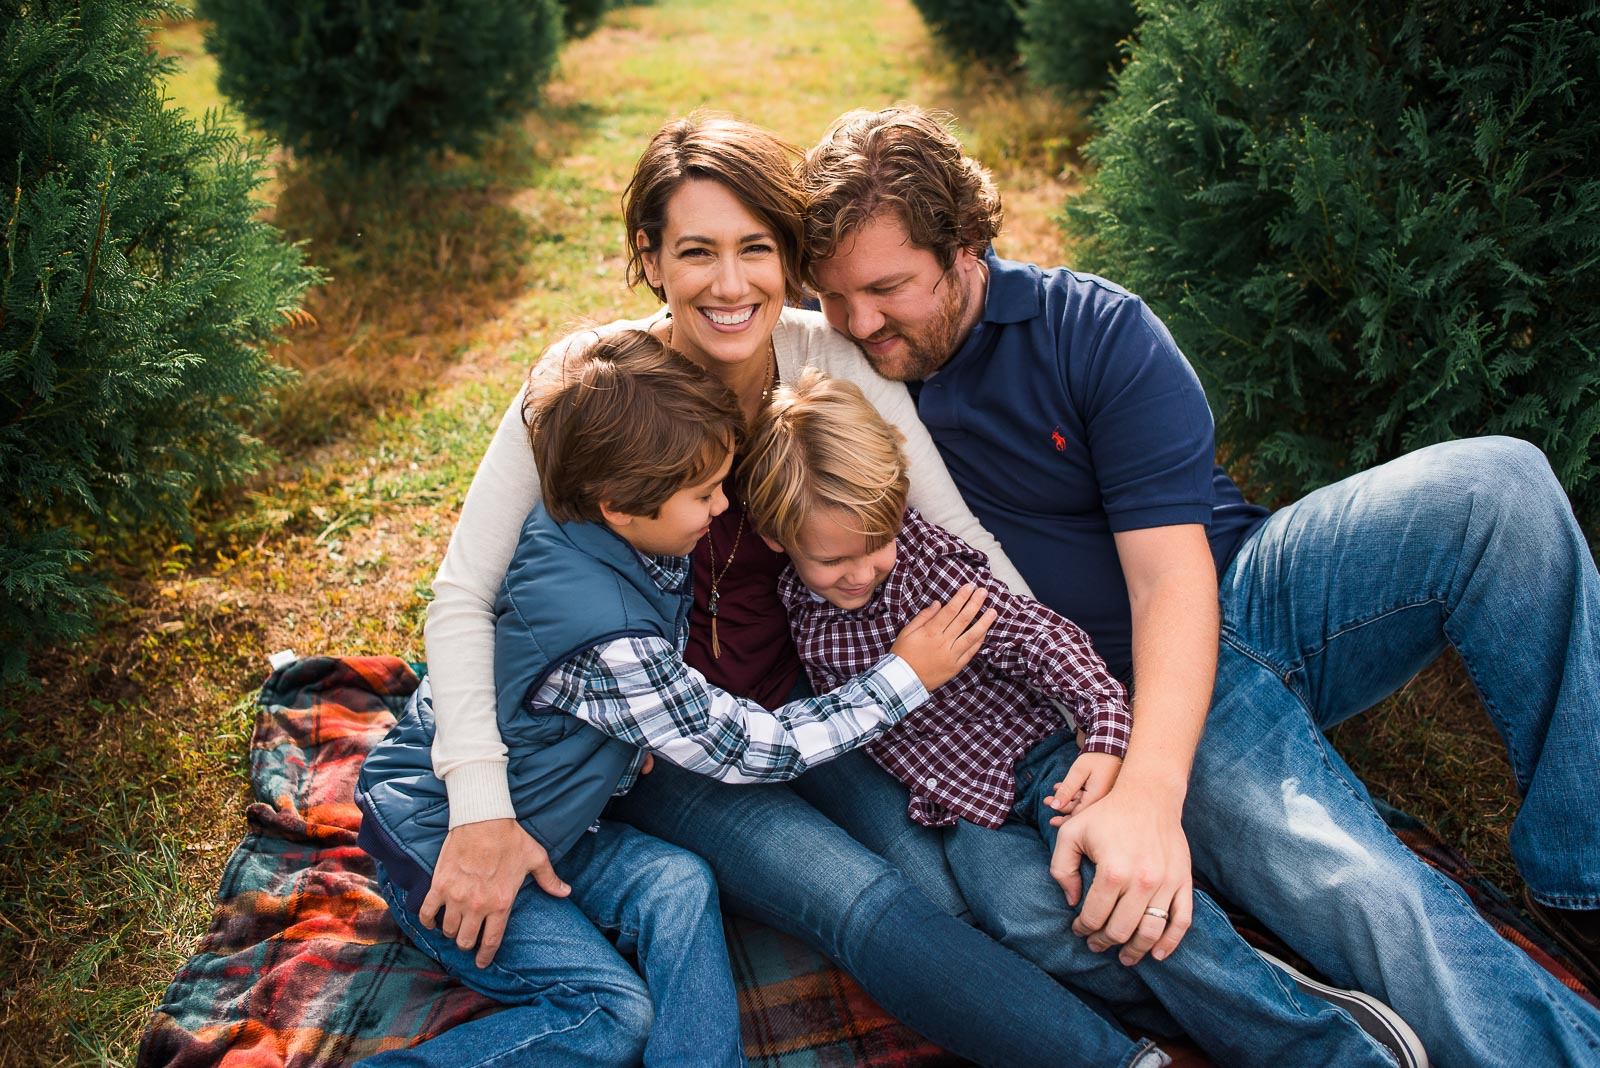 family-poses_family-on-blanket-hugging-larissa-lord-photography-1-5